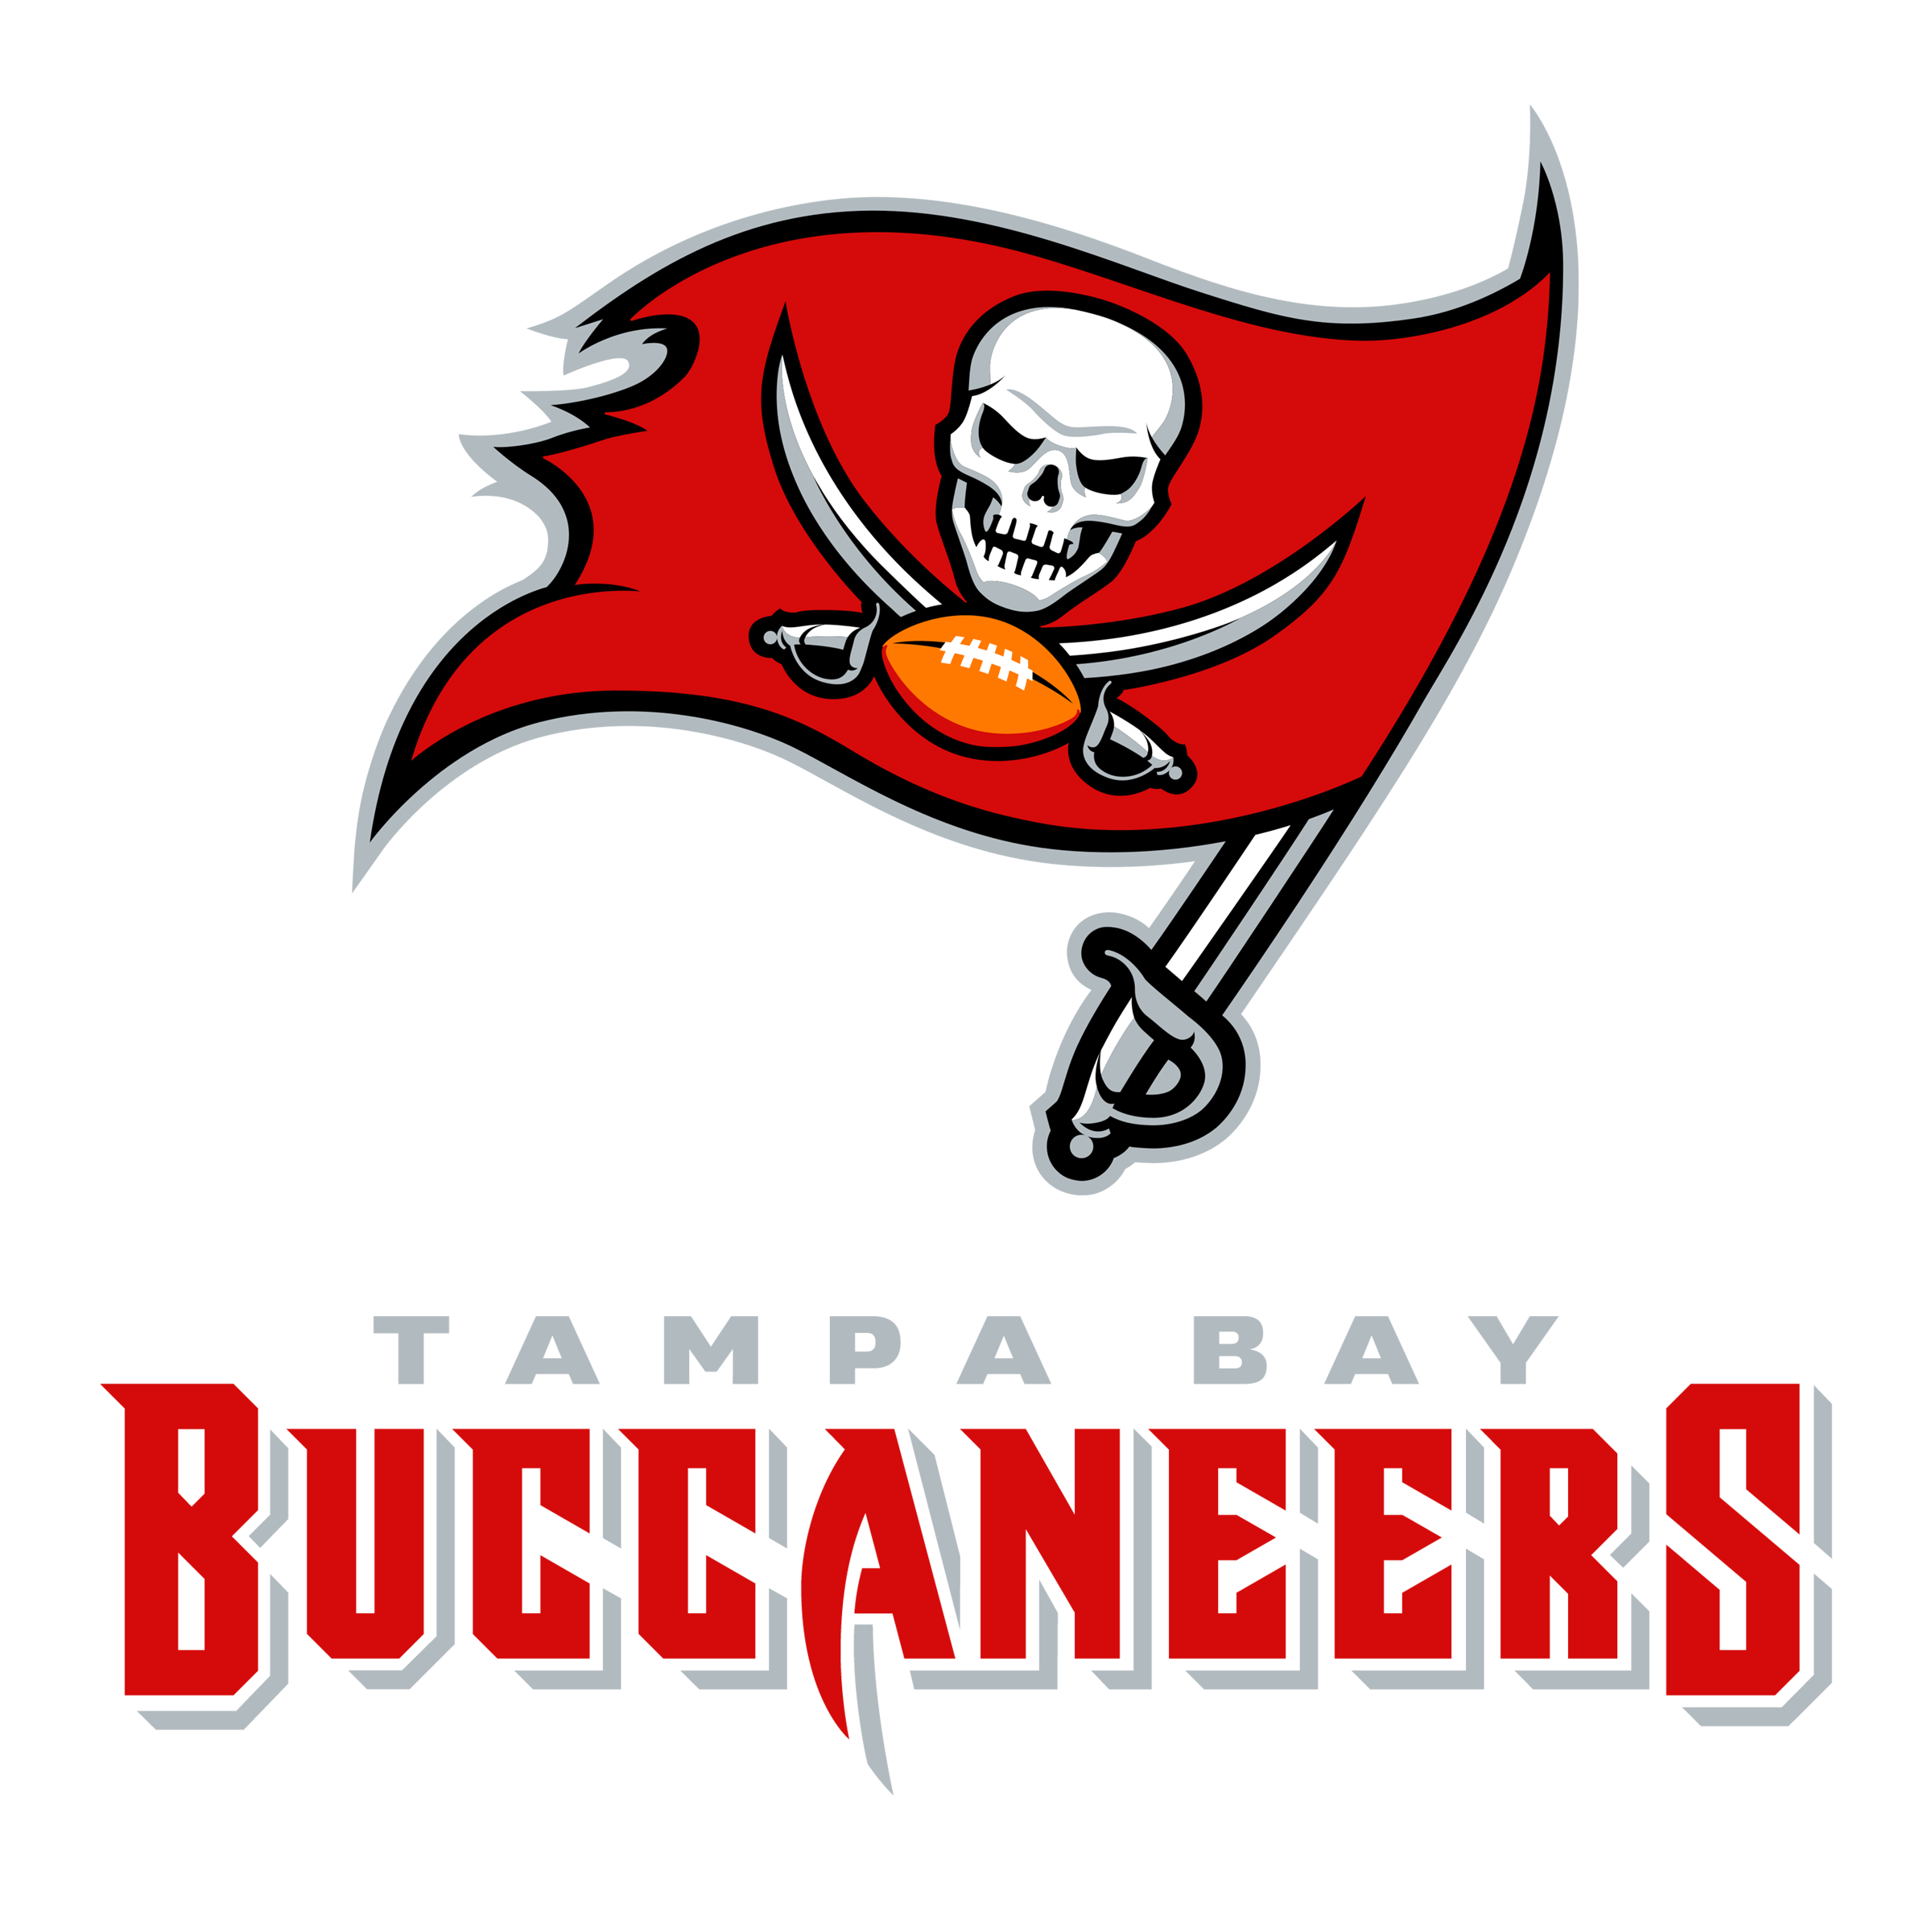 Tampa Bay Buccaneers FNF Campus Tour